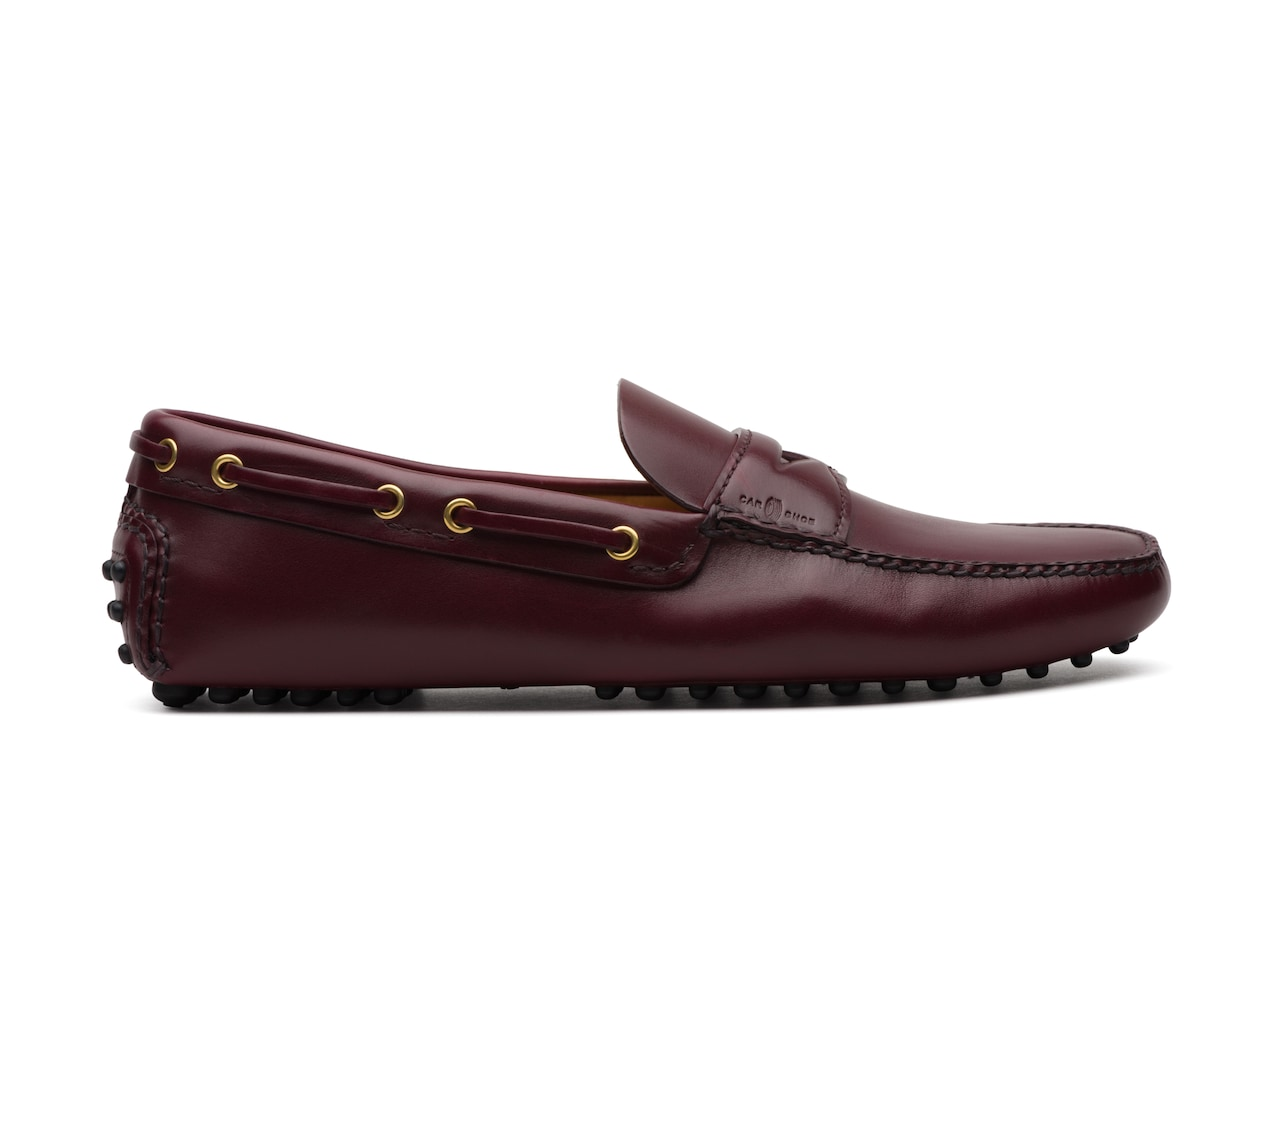 DRIVING SHOES SOFT CALF BURGUNDY